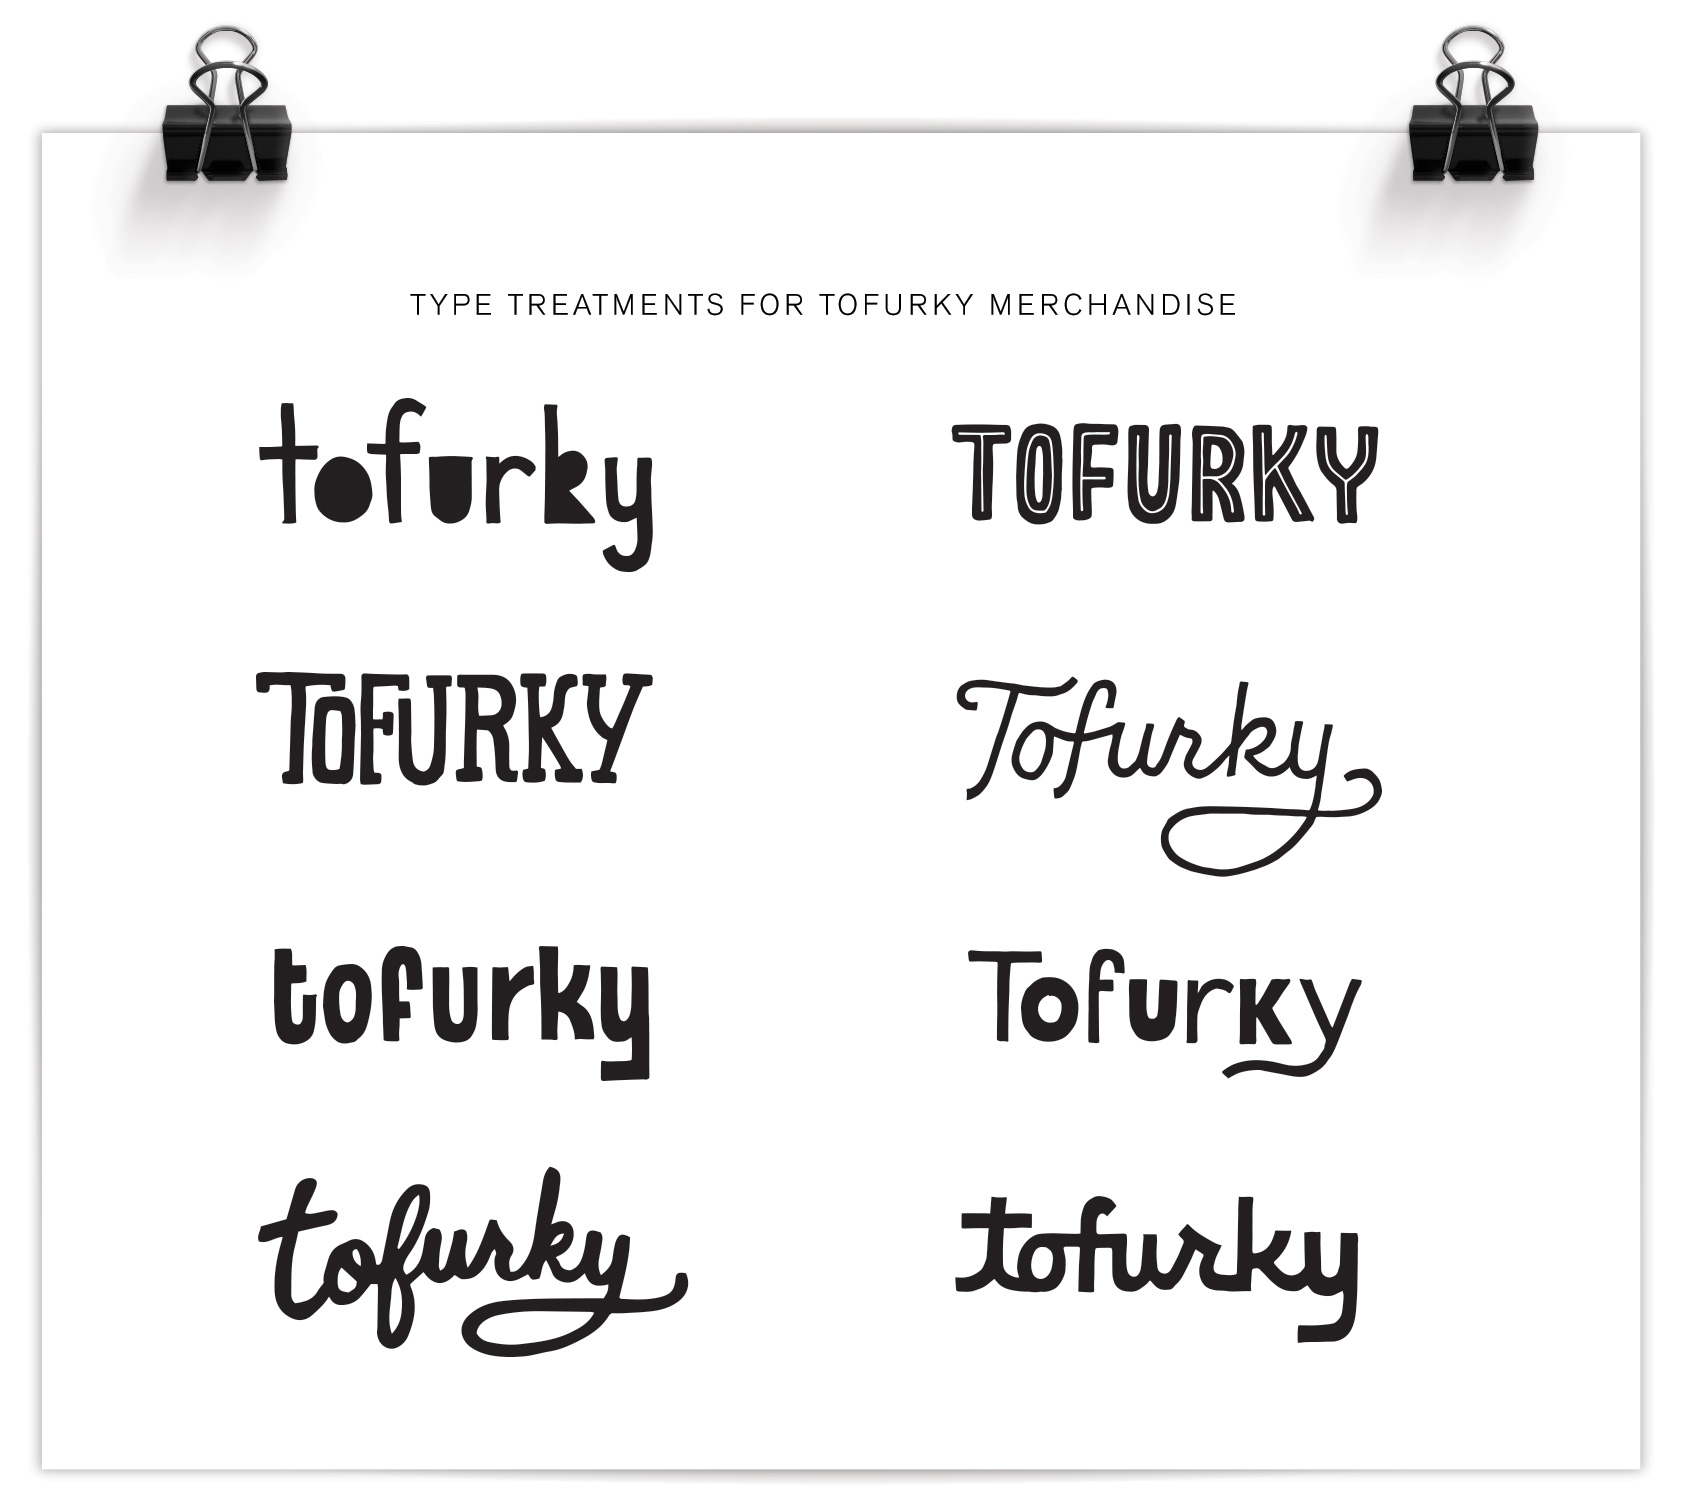 Tofurky-merchandise-type-treatments